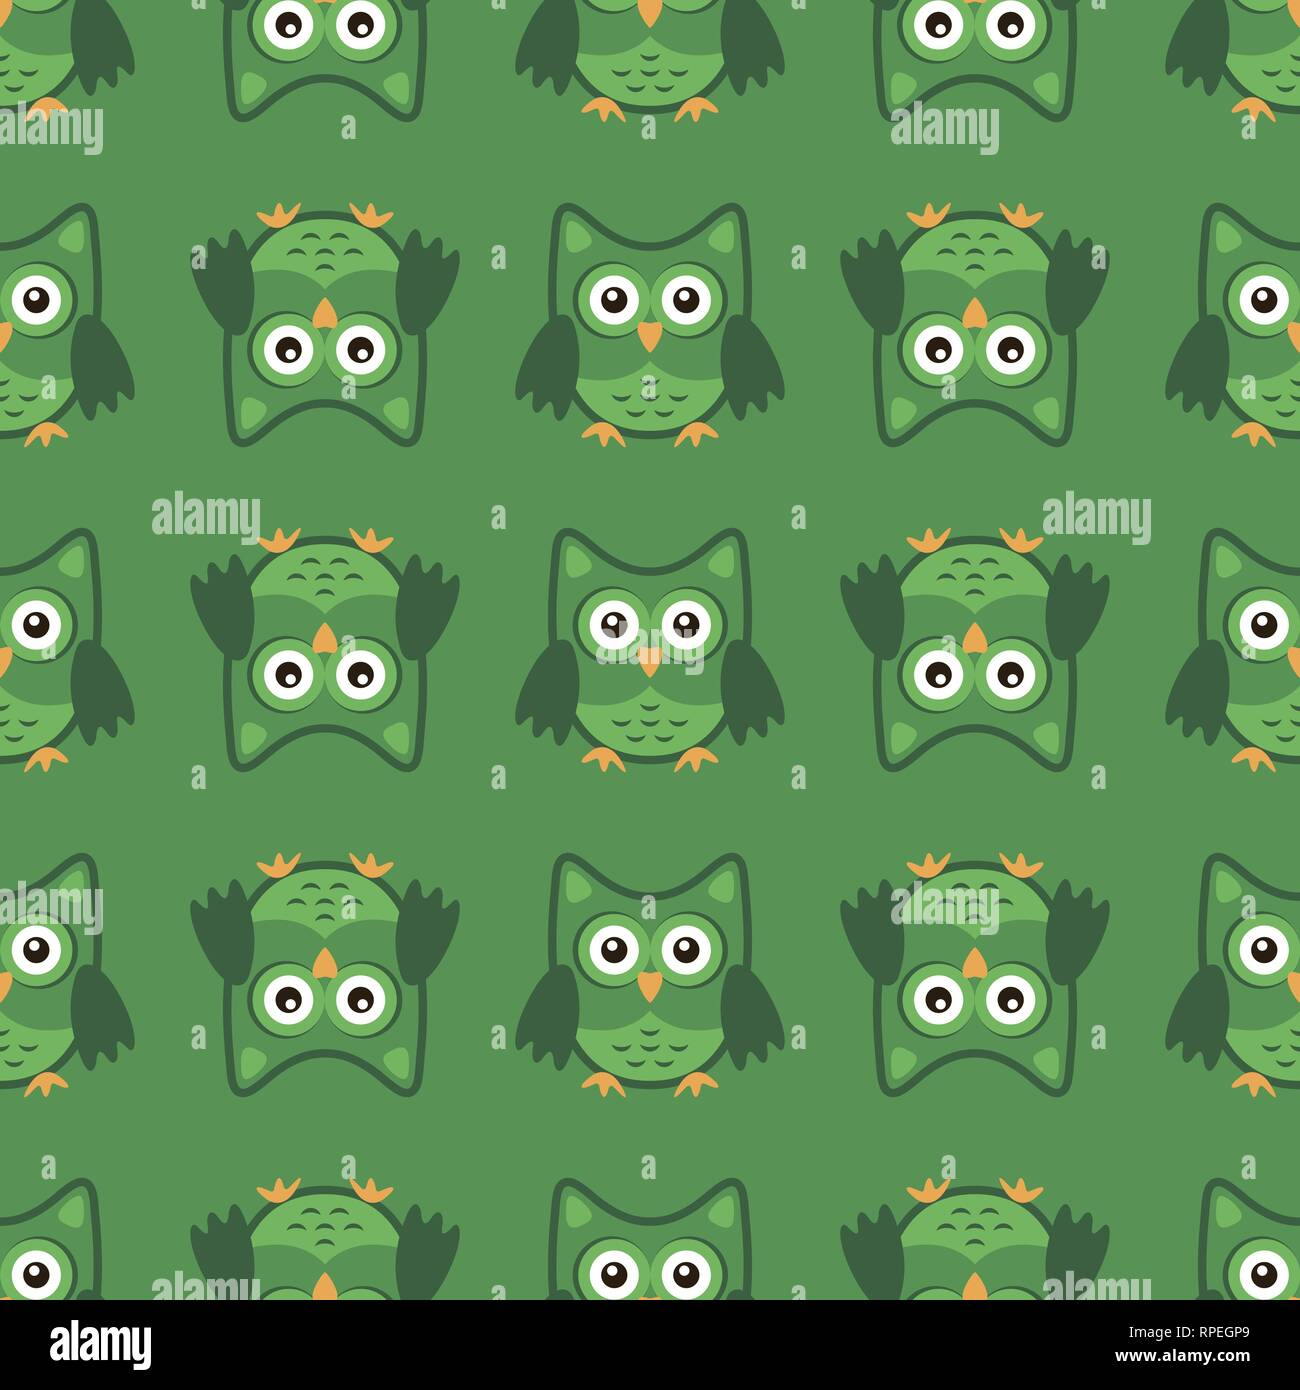 Owl stylized art seemless pattern green colors - Stock Vector